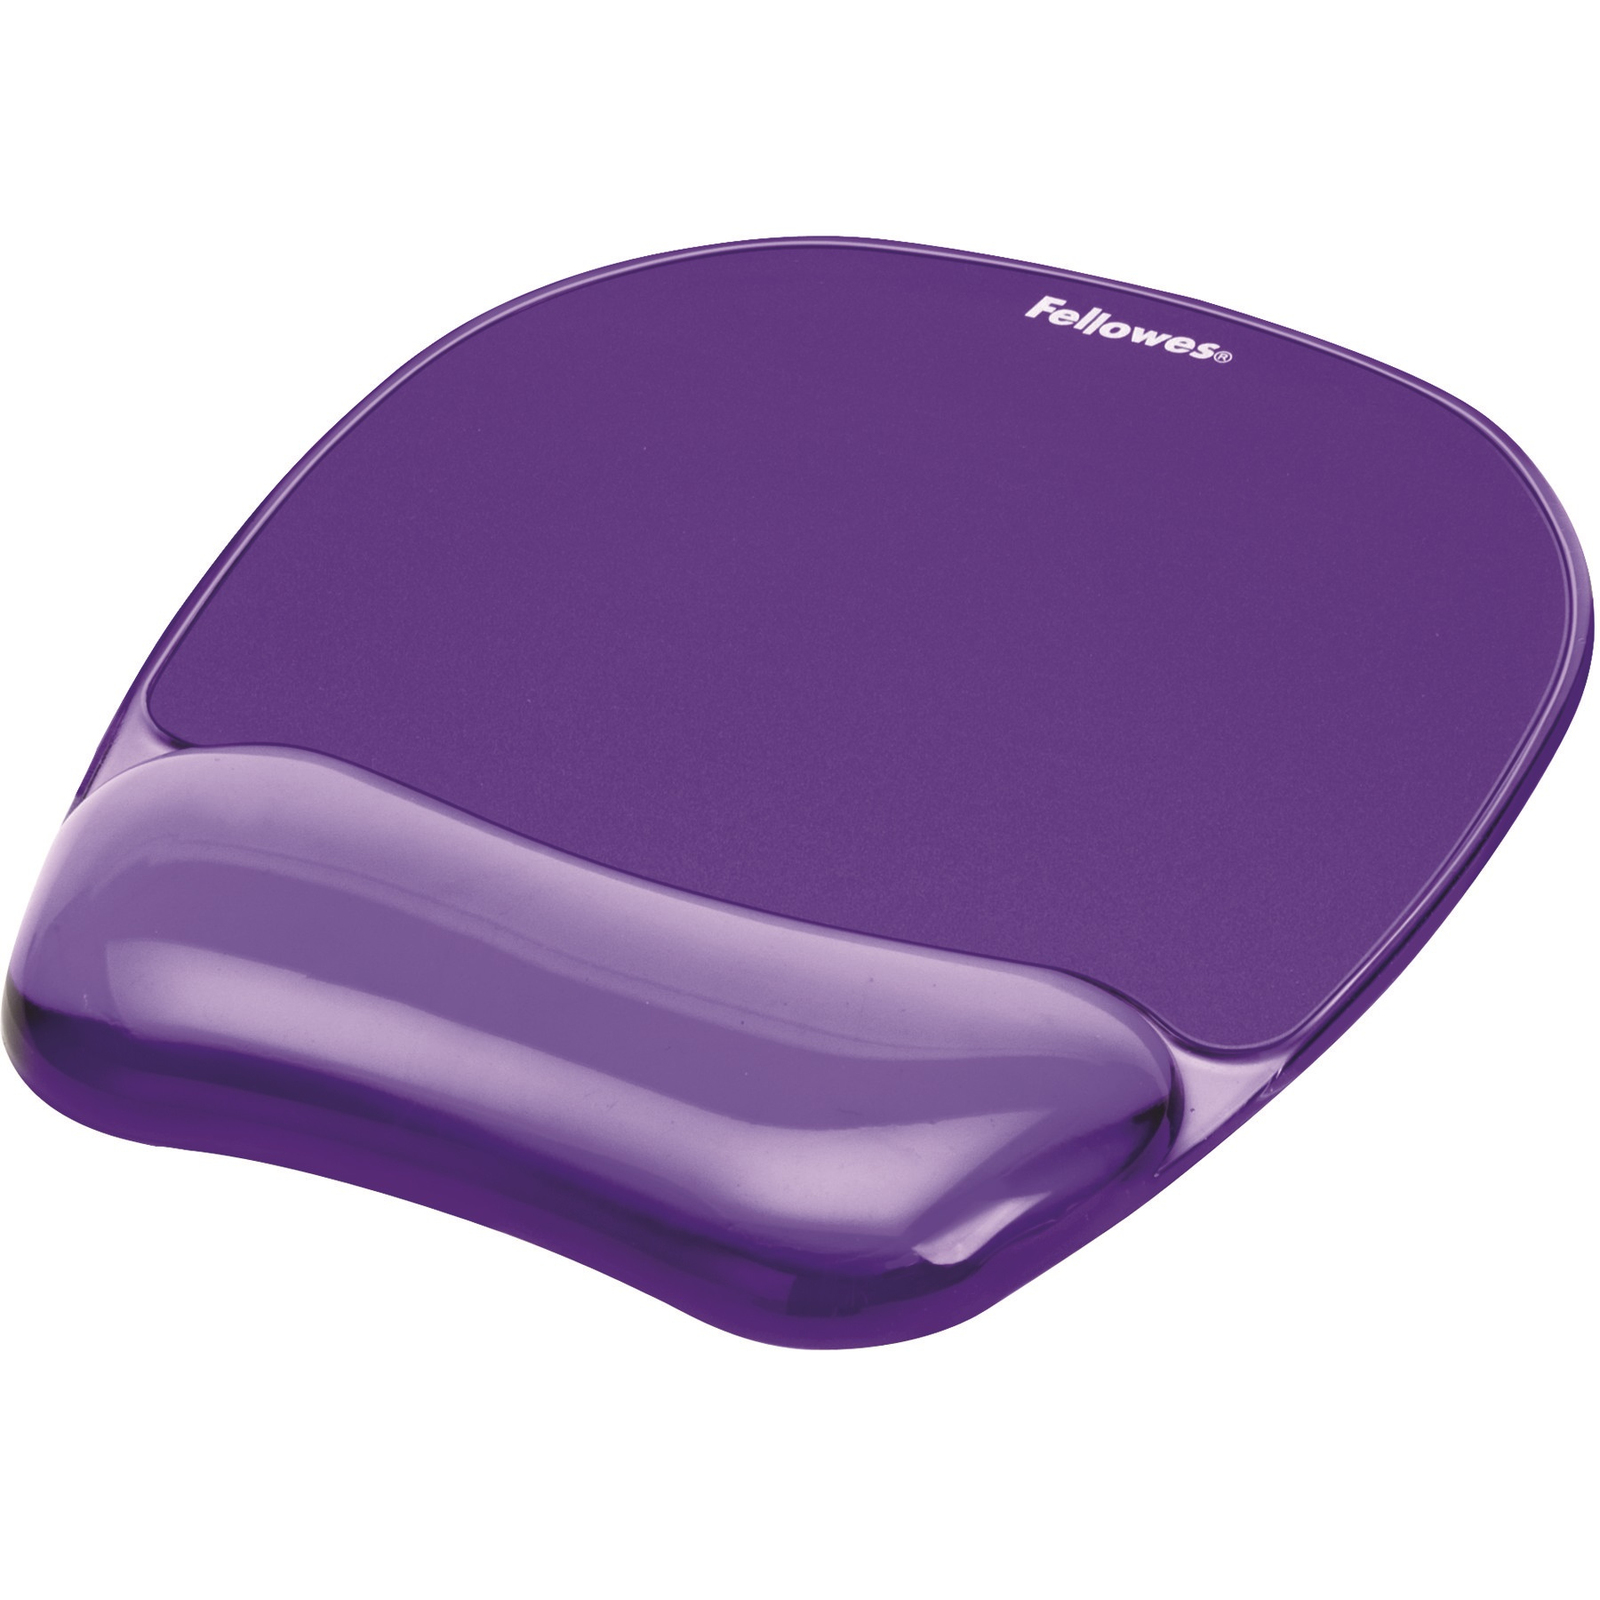 Fellowes 9144104 mouse pad Violet - $37.60